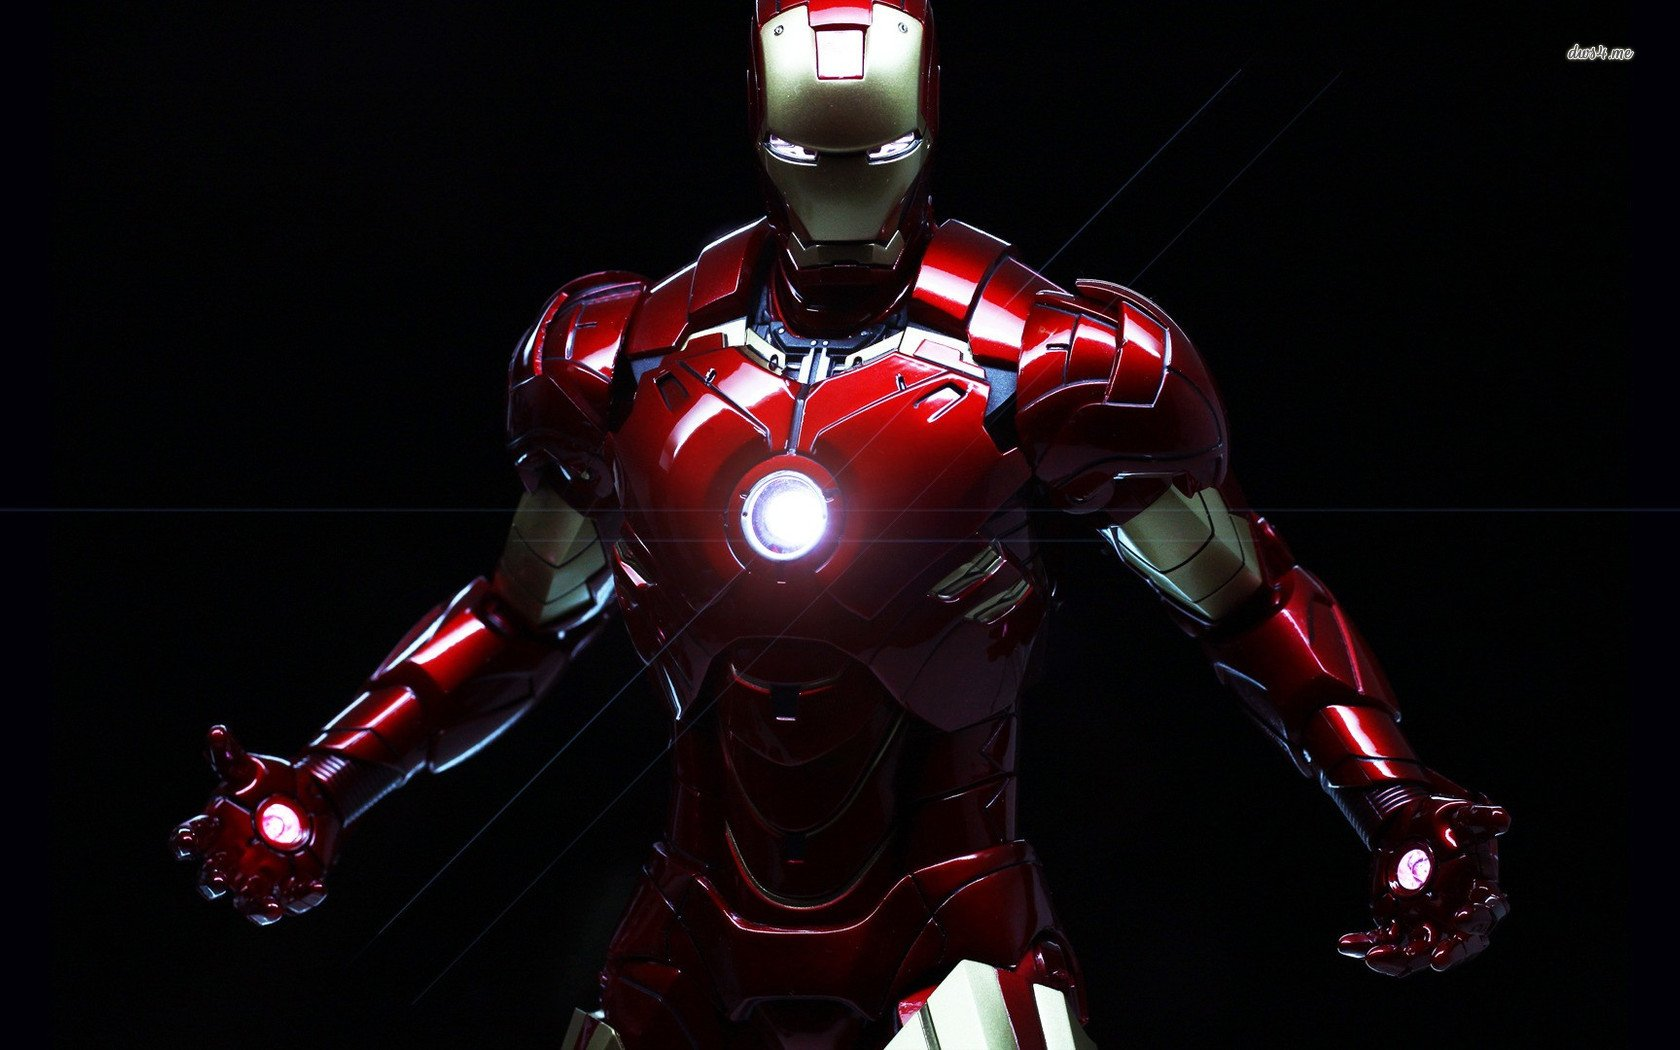 Iron Man wallpaper 1280x800 Iron Man wallpaper 1366x768 Iron Man 1680x1050